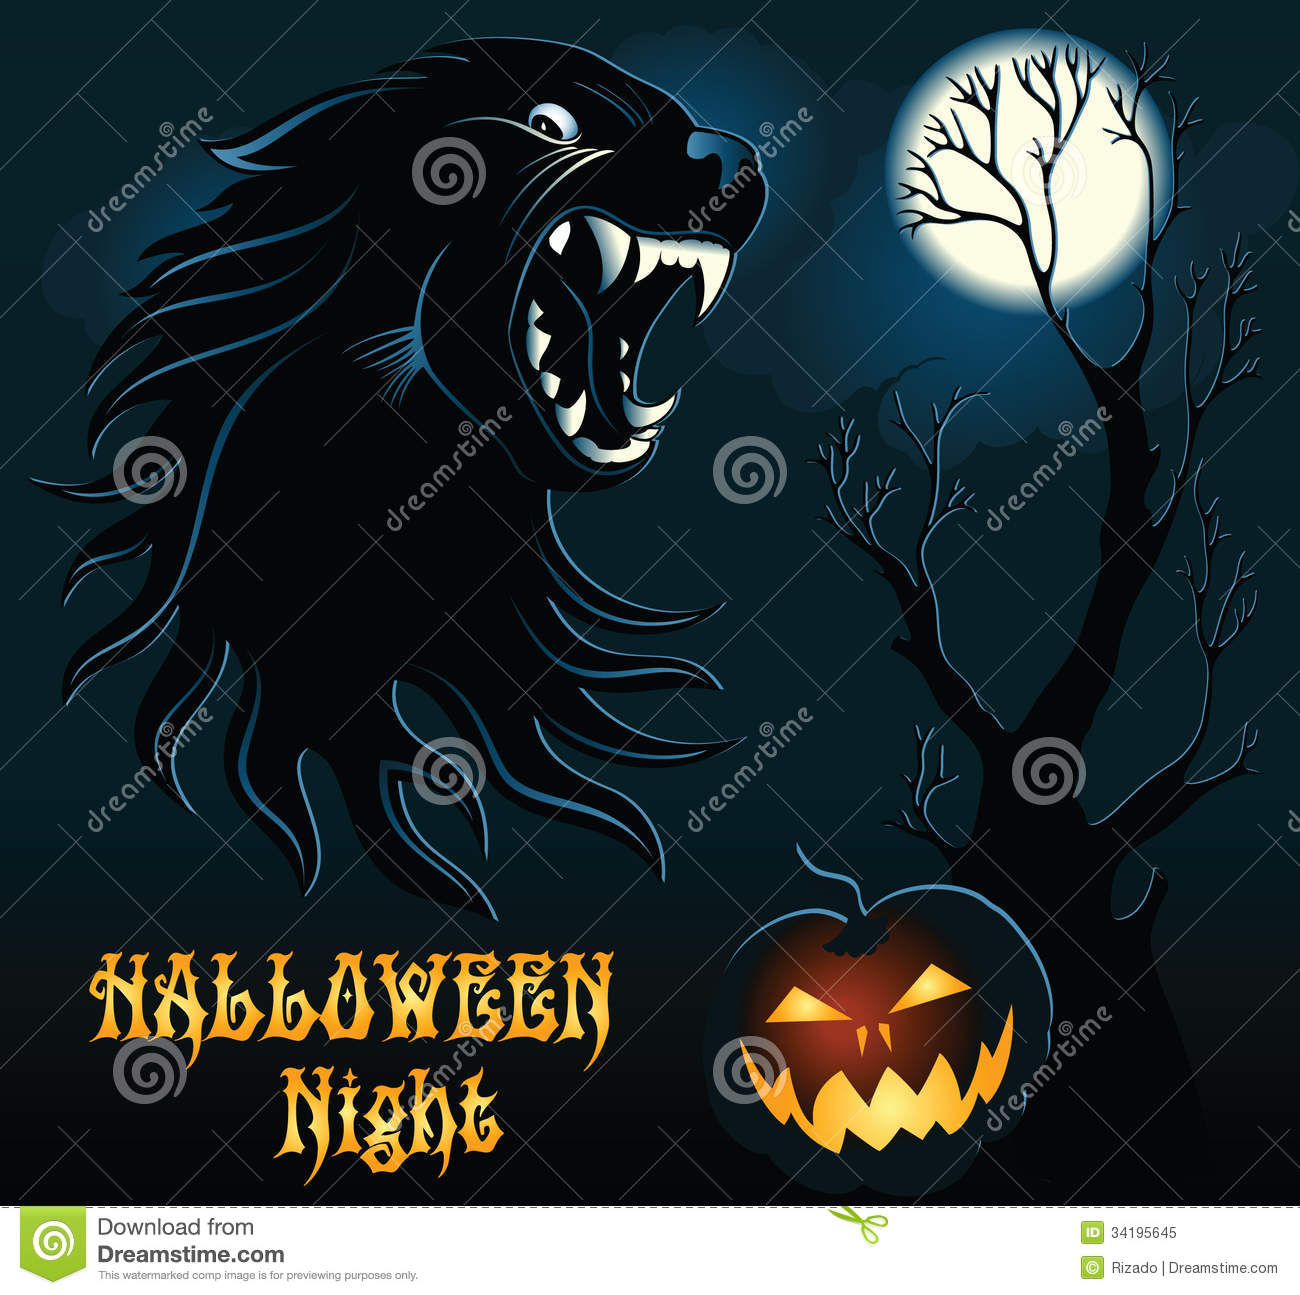 background cartoon halloween wild wolf - Wolf Halloween